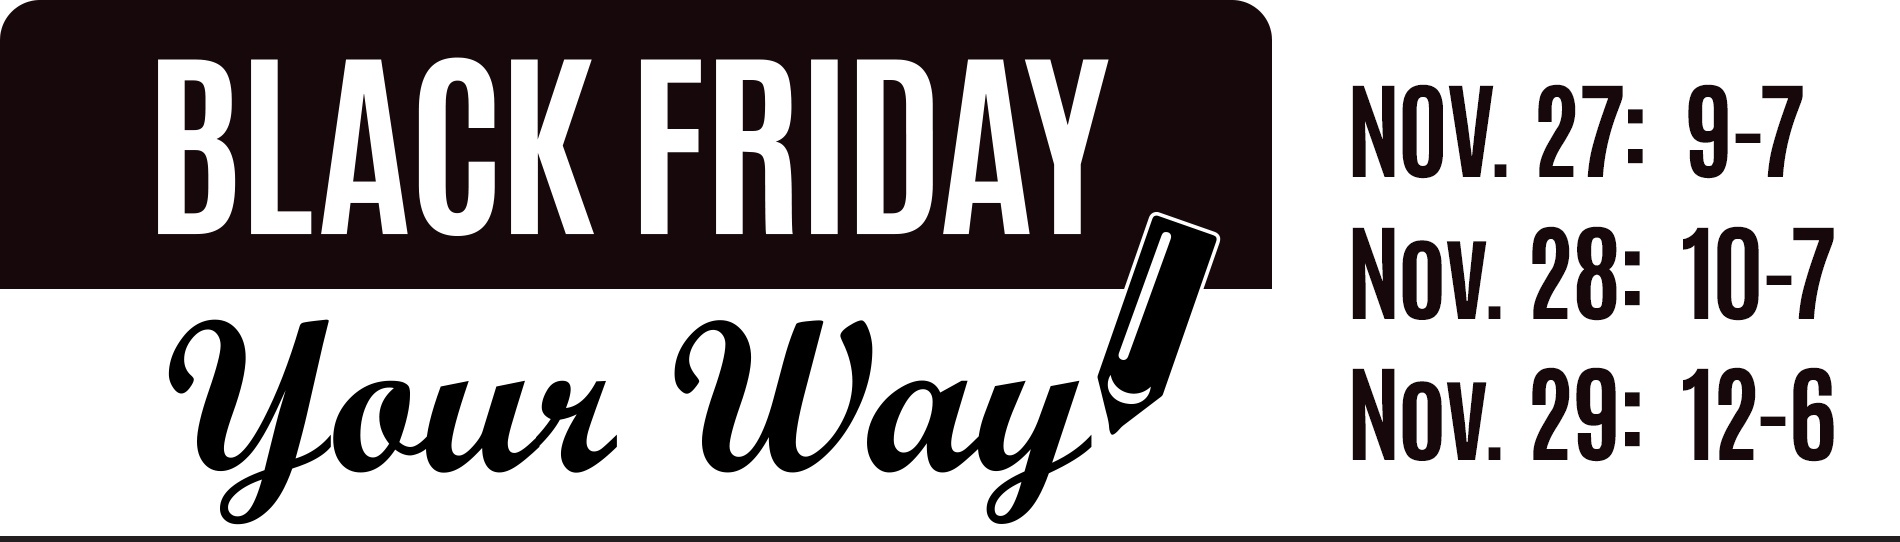 Black Friday Your Way Banner